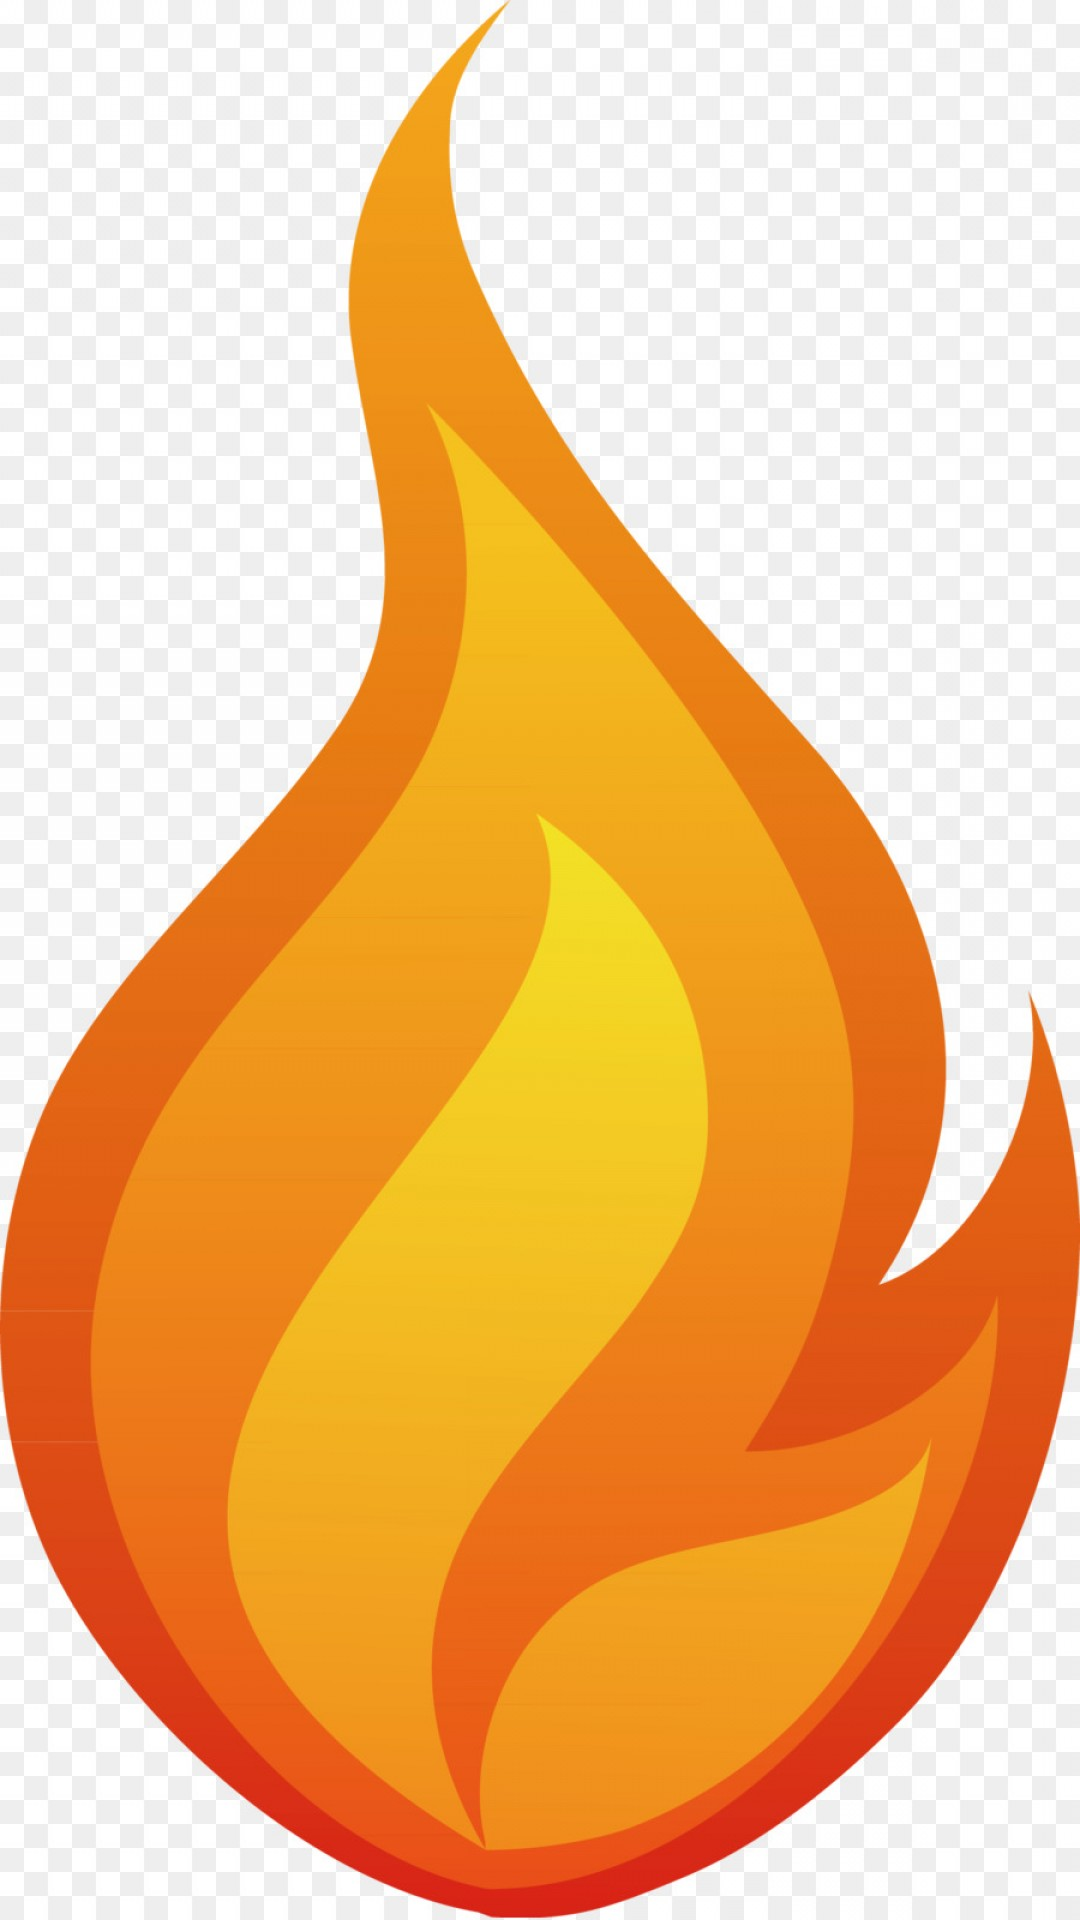 1080x1920 Png Flame Fire Clip Art Flame Hand Painted Vector Createmepink